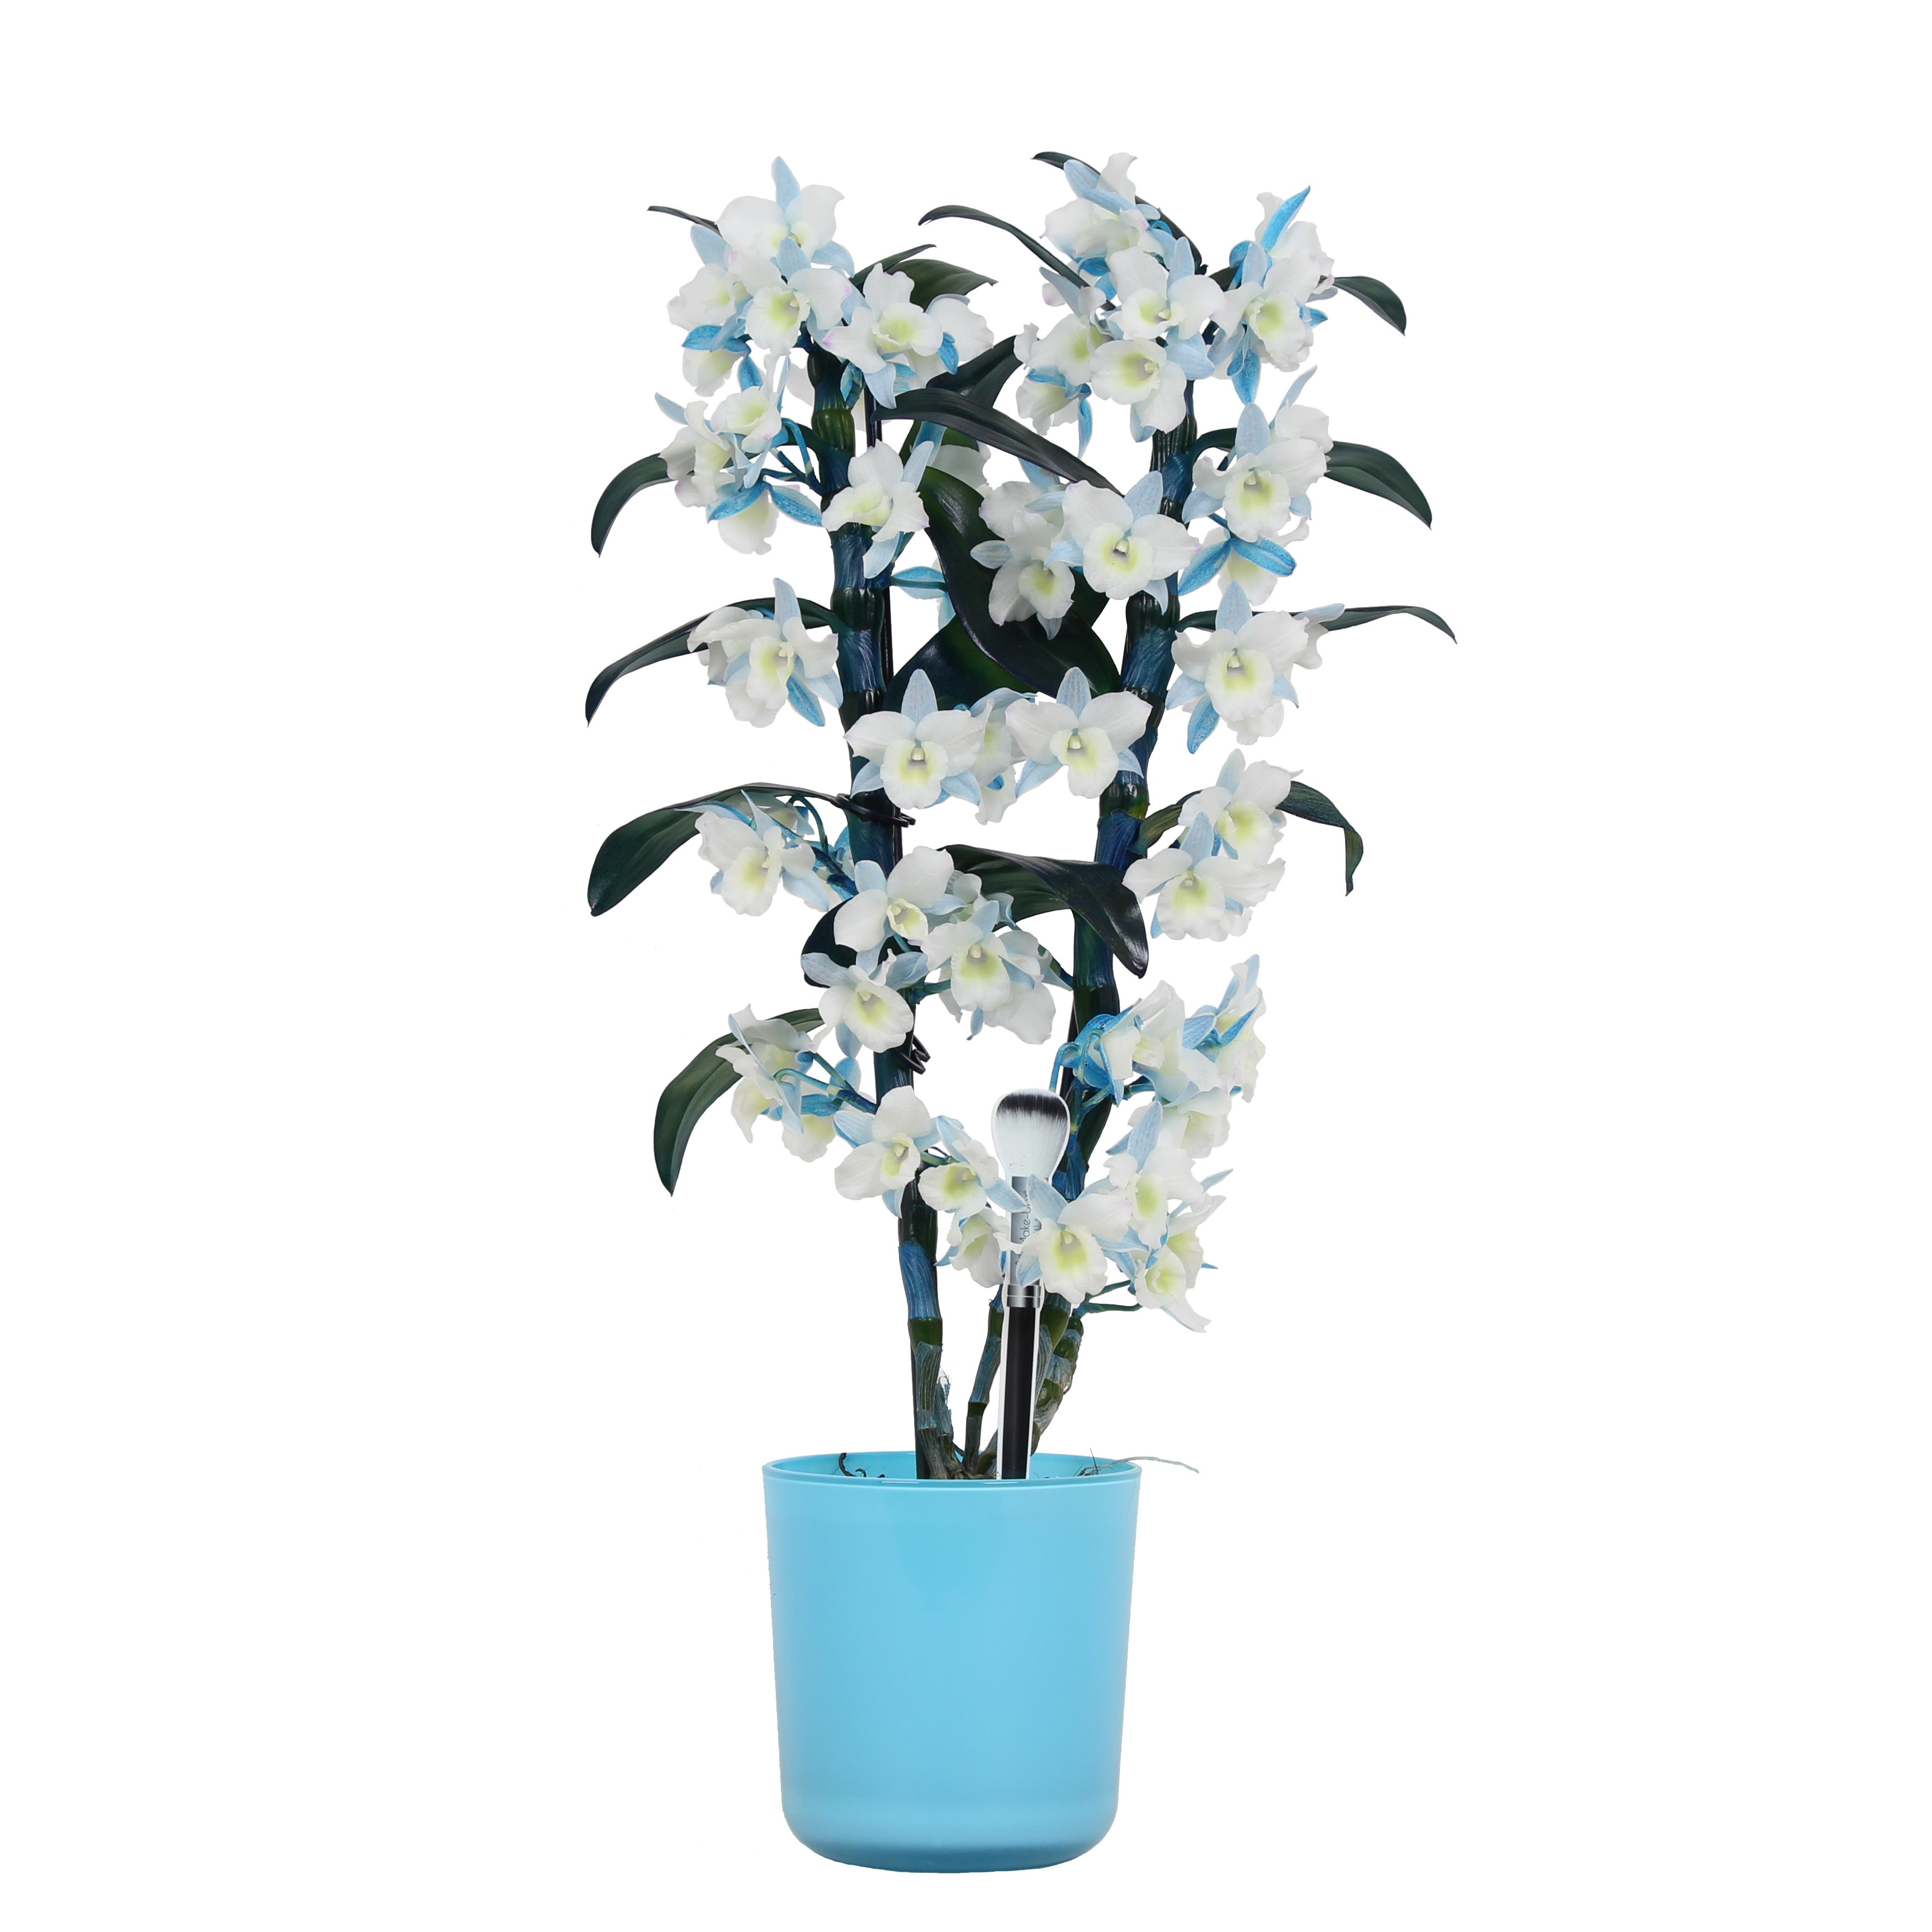 Orchid – Bamboo Orchid in blue plant pot as a set – Height: 50 cm, 2 stems, white-blue flowers